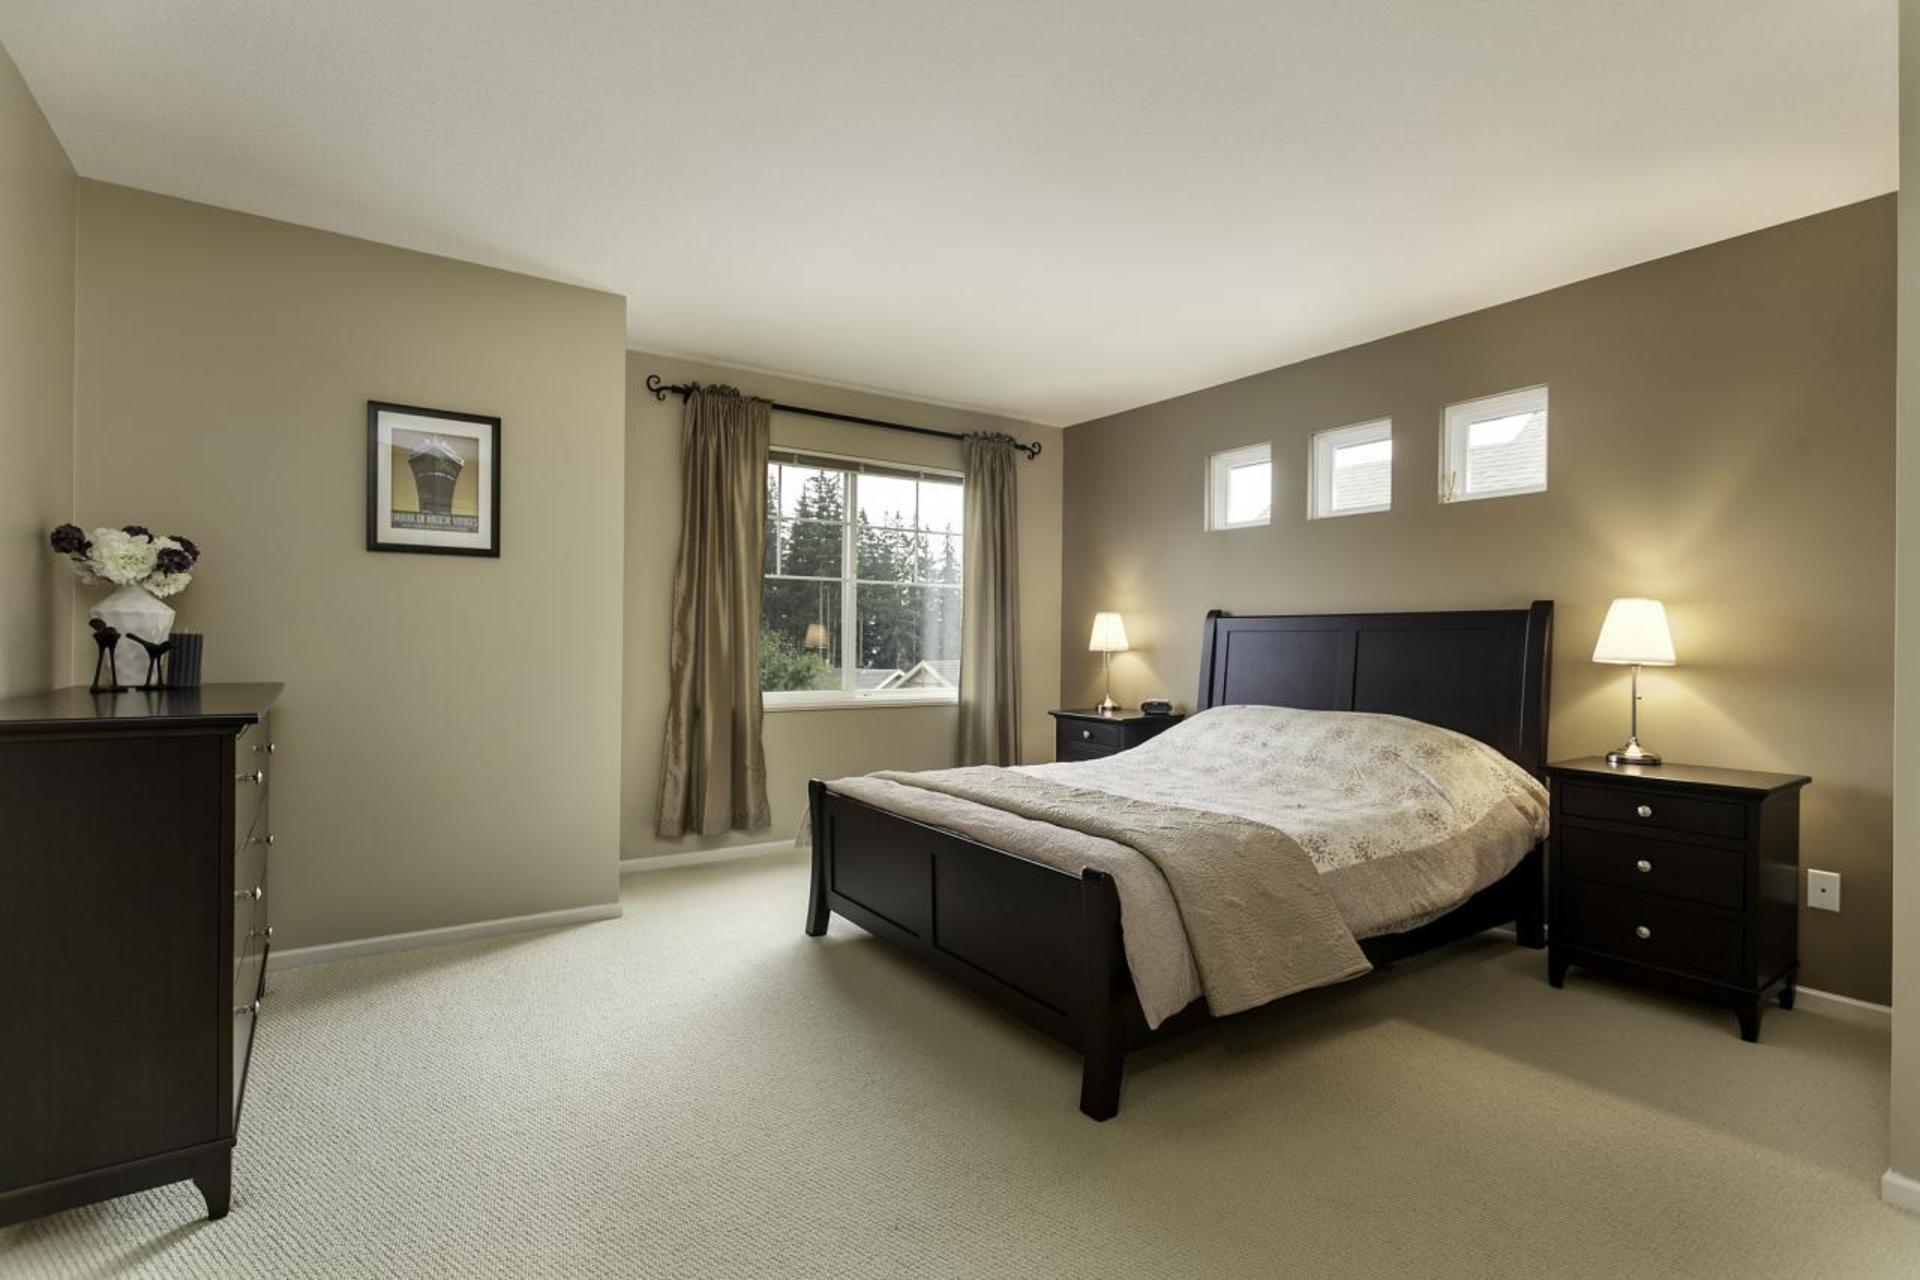 02-1 at 109 Forest Park Way, Heritage Woods PM, Port Moody